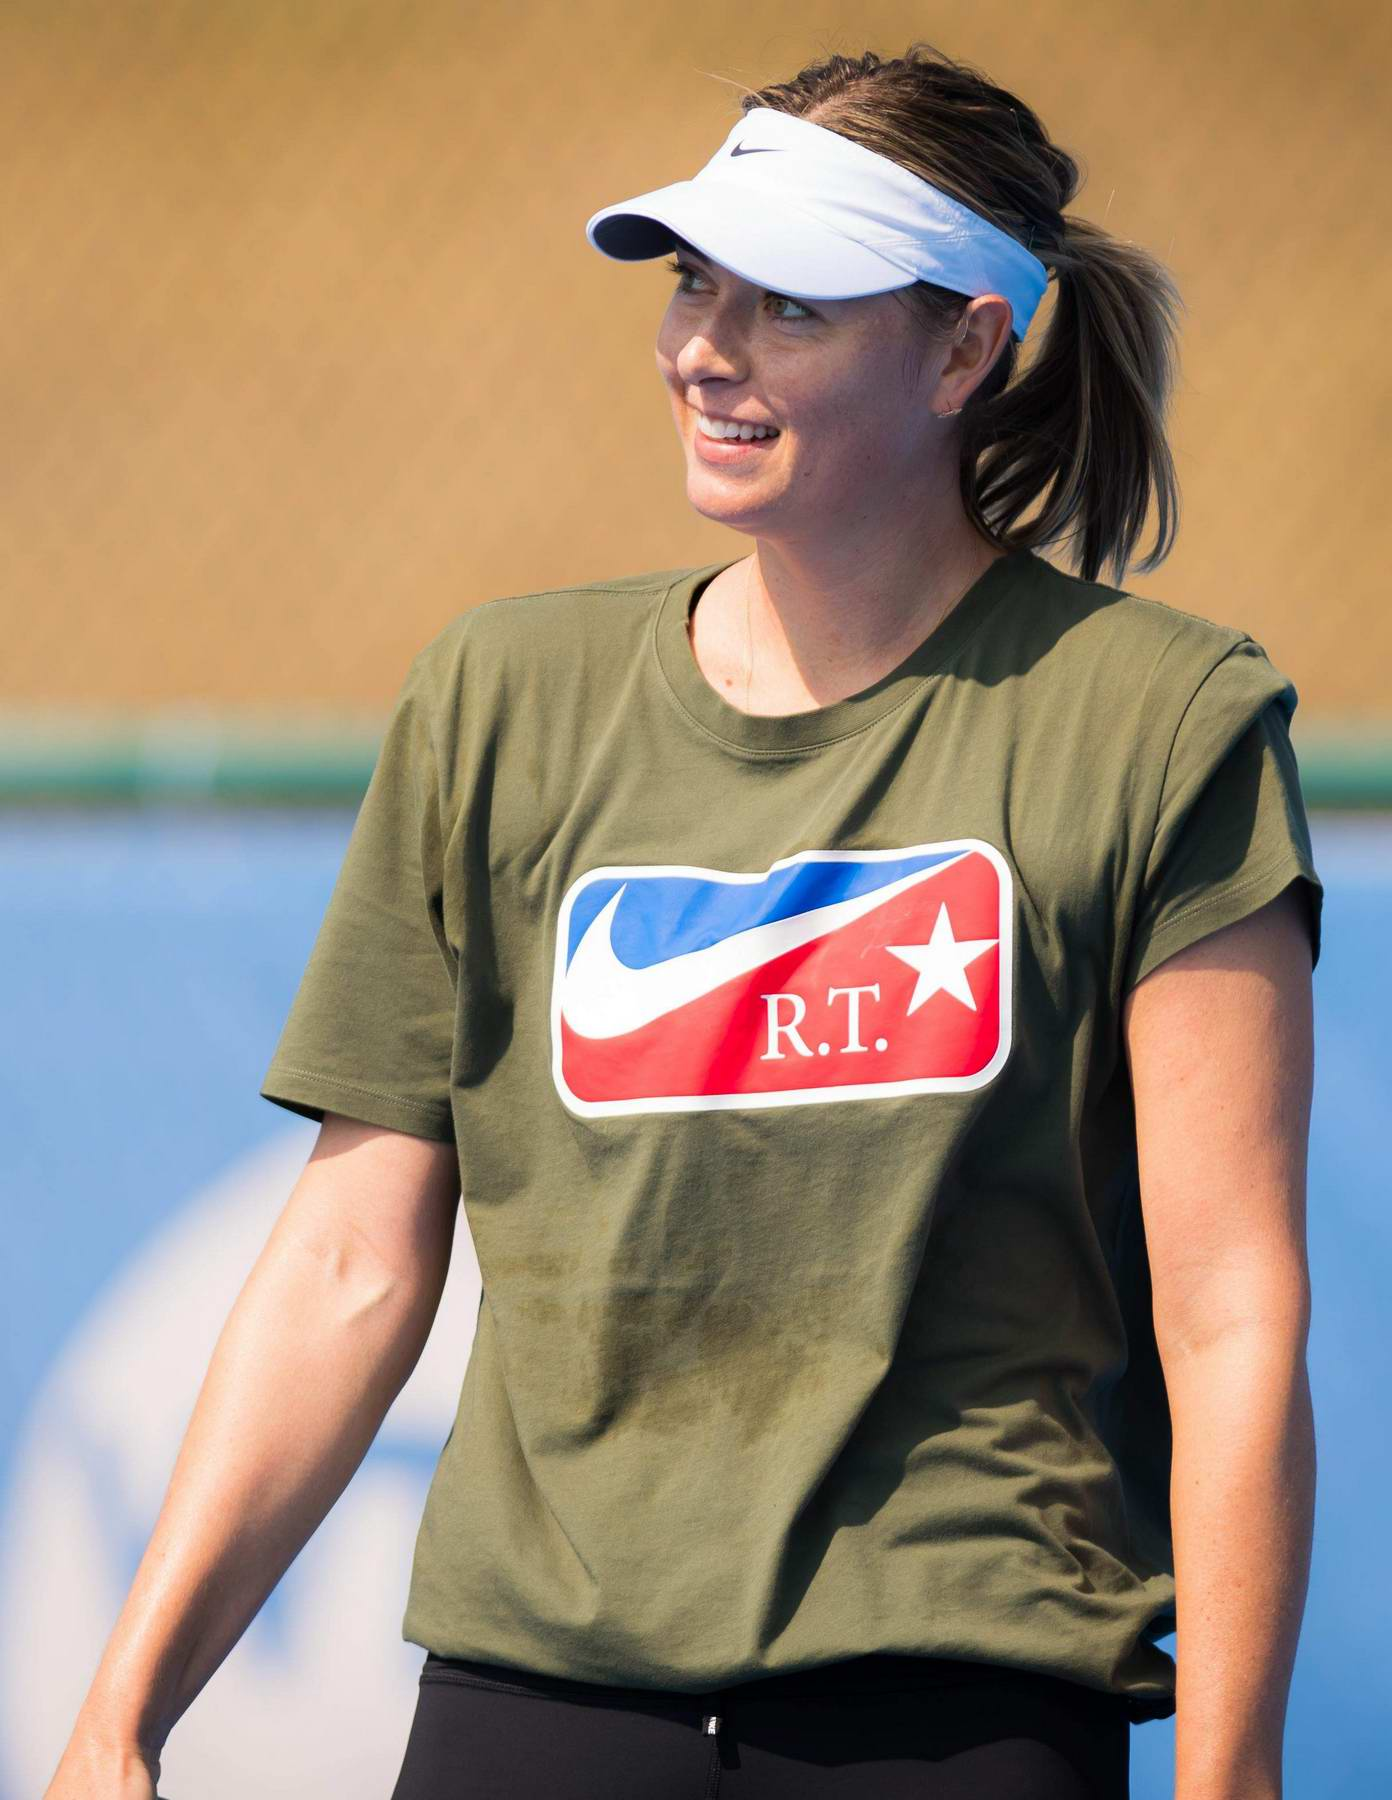 Maria Sharapova during her practice session at 2018 Shenzen Open WTA International Open, China